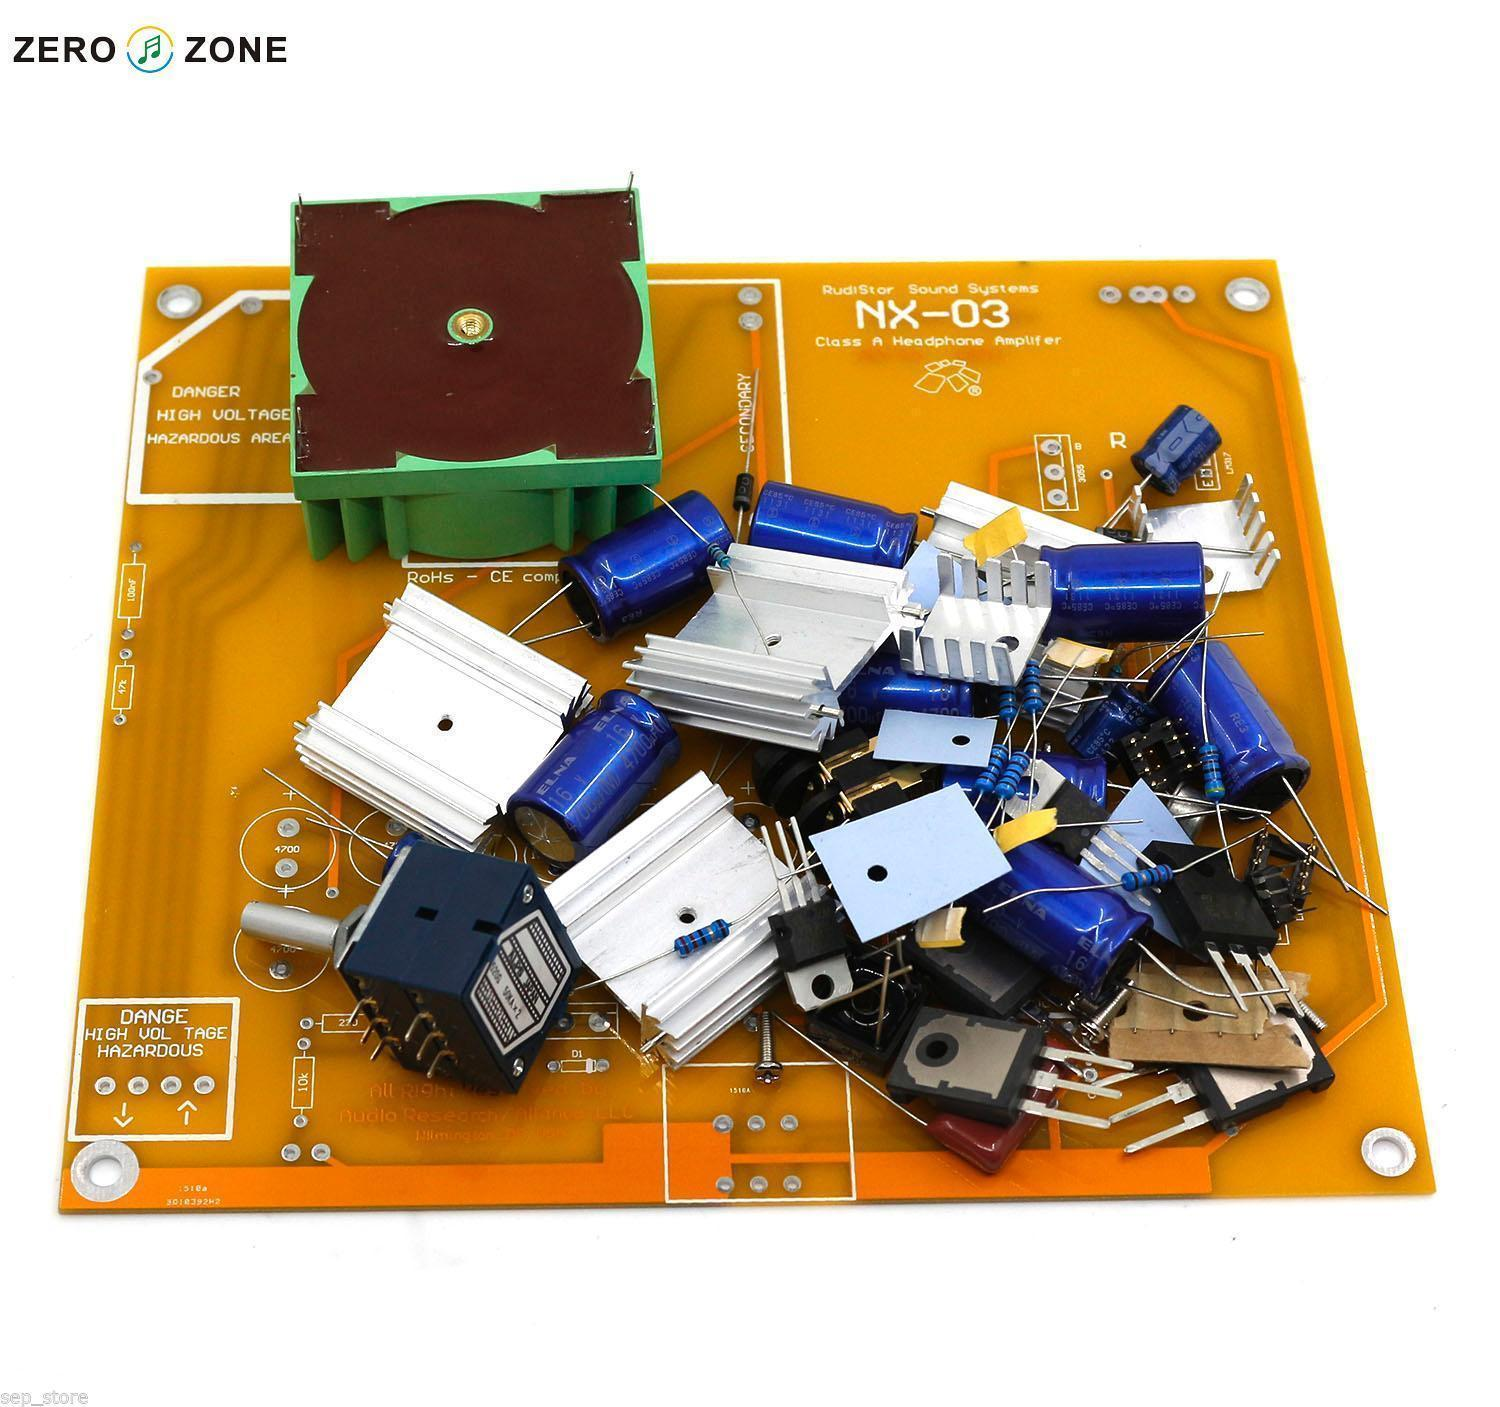 GZLOZONE NX 03 Headphone Amplifier Kit Base On Italy ...